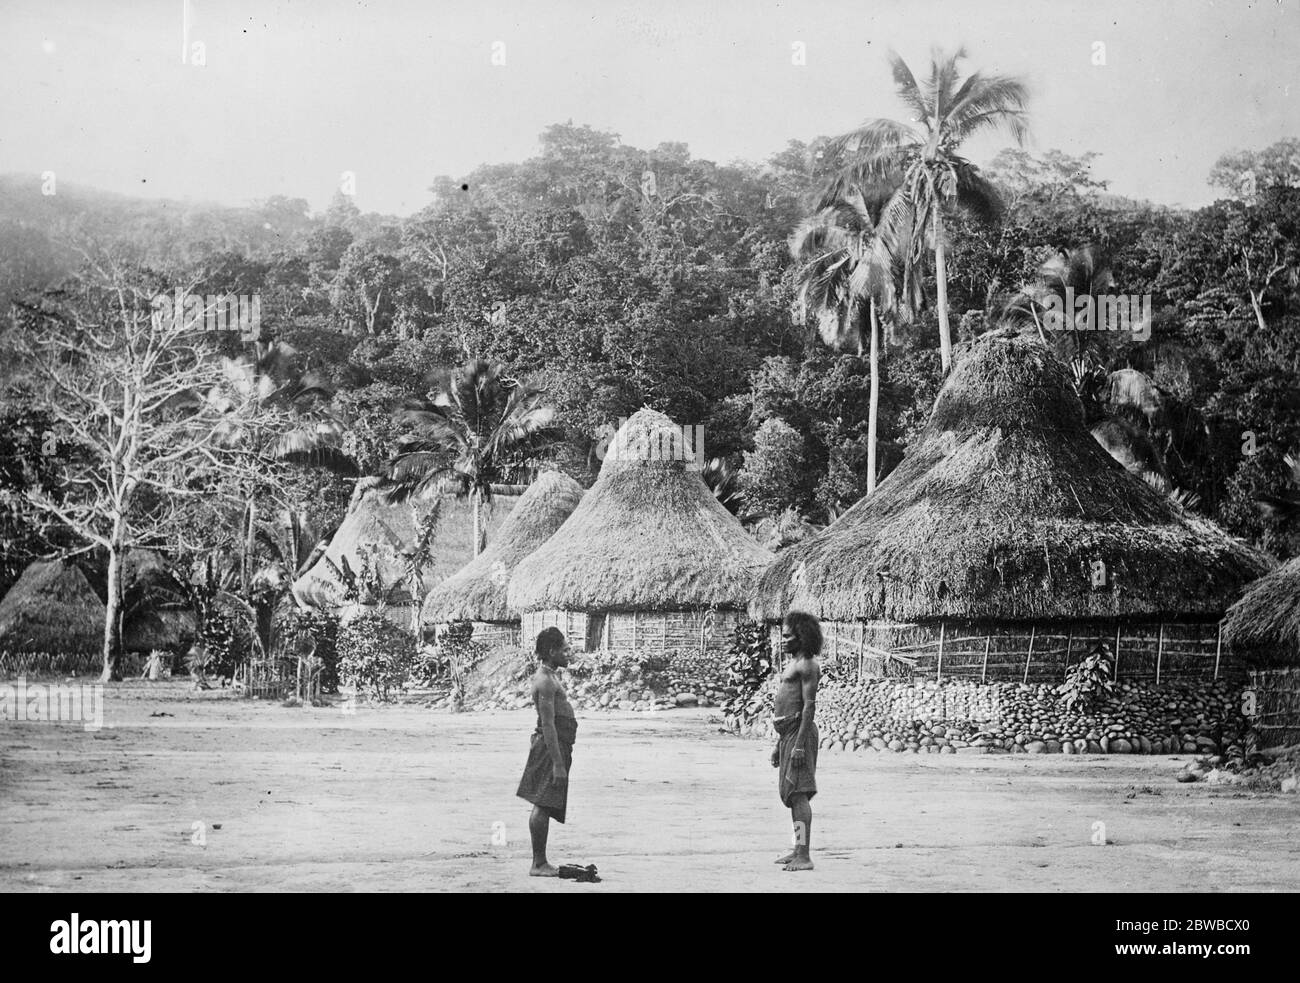 Duke And Duchess Of York S Tour To Visit Suva Fiji Islands A Typical Native Village 11 February 1927 Stock Photo Alamy